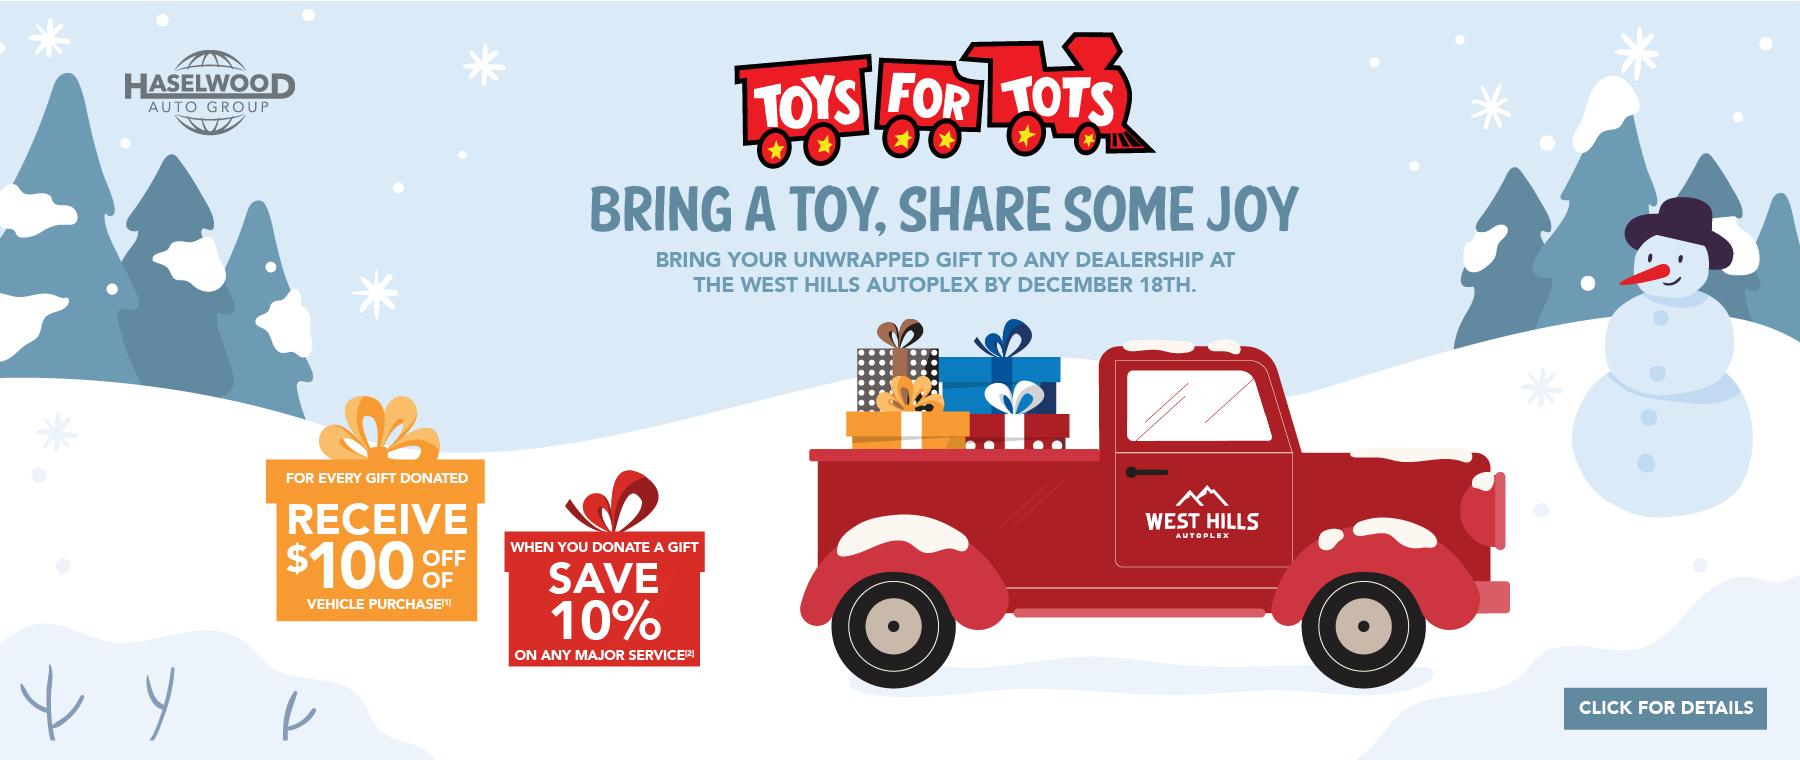 11731 – NOV20 – WHAP – Toys for Tots – Webslides_1800x760